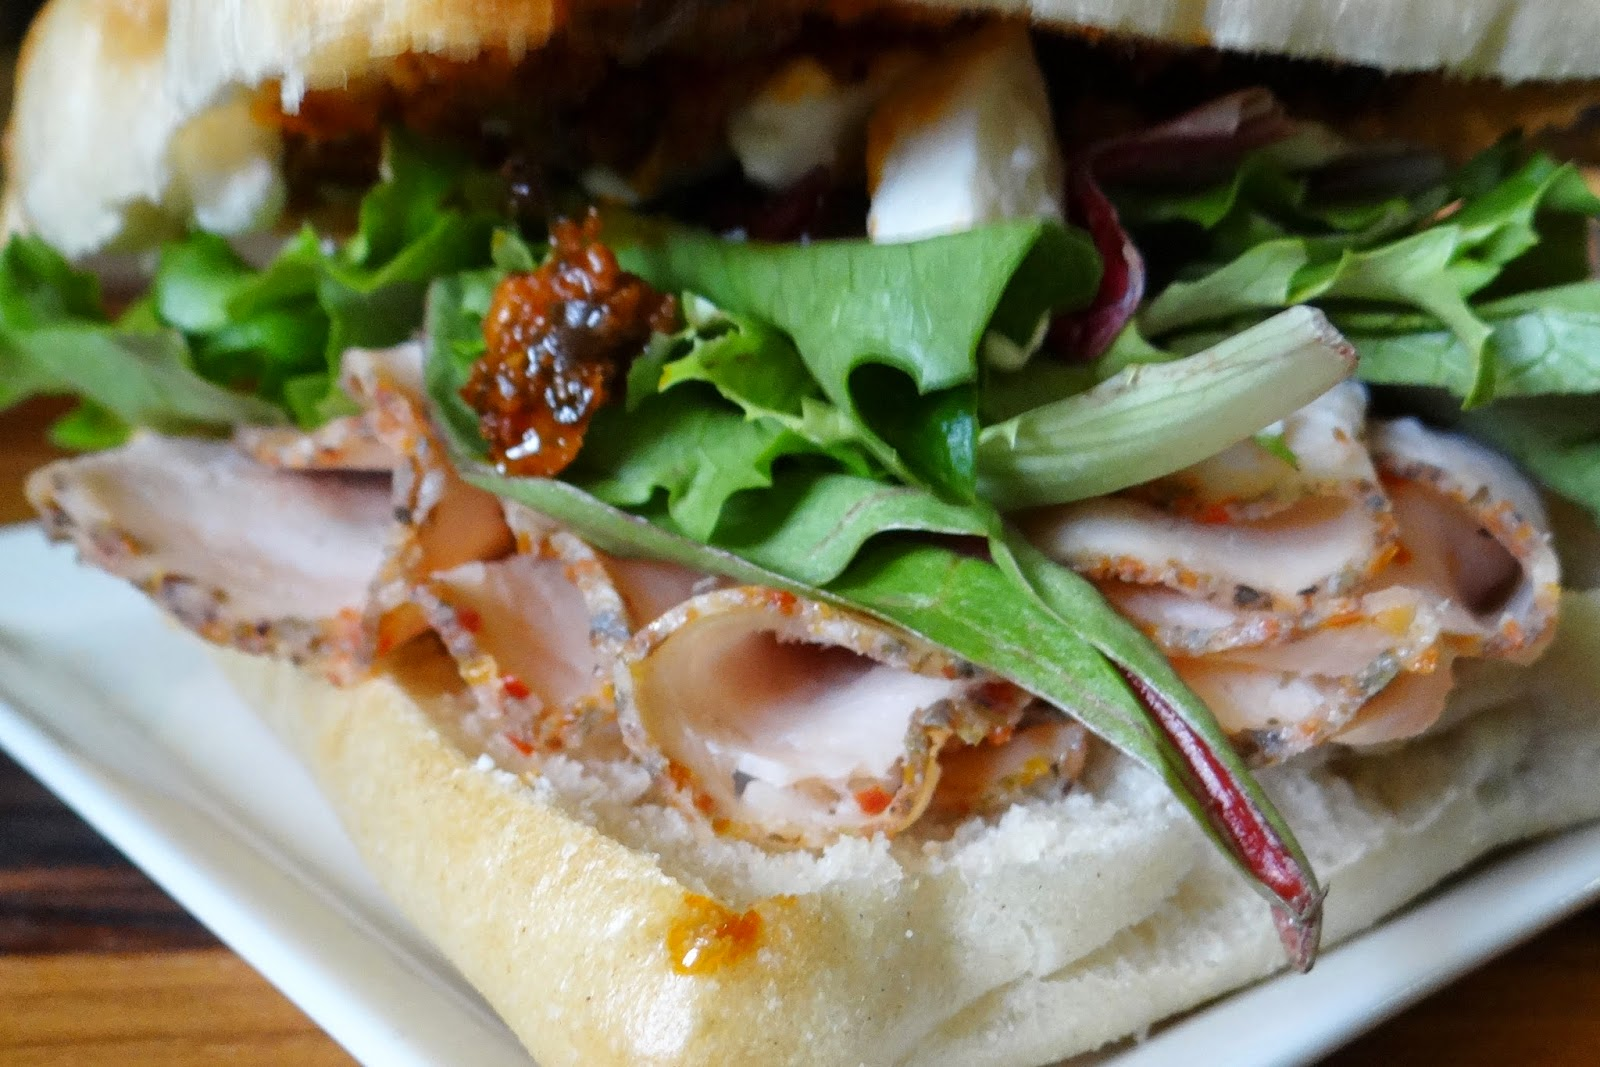 Taste of Tuscany Turkey Sandwich #Recipe #DeliFreshBOLD #spon